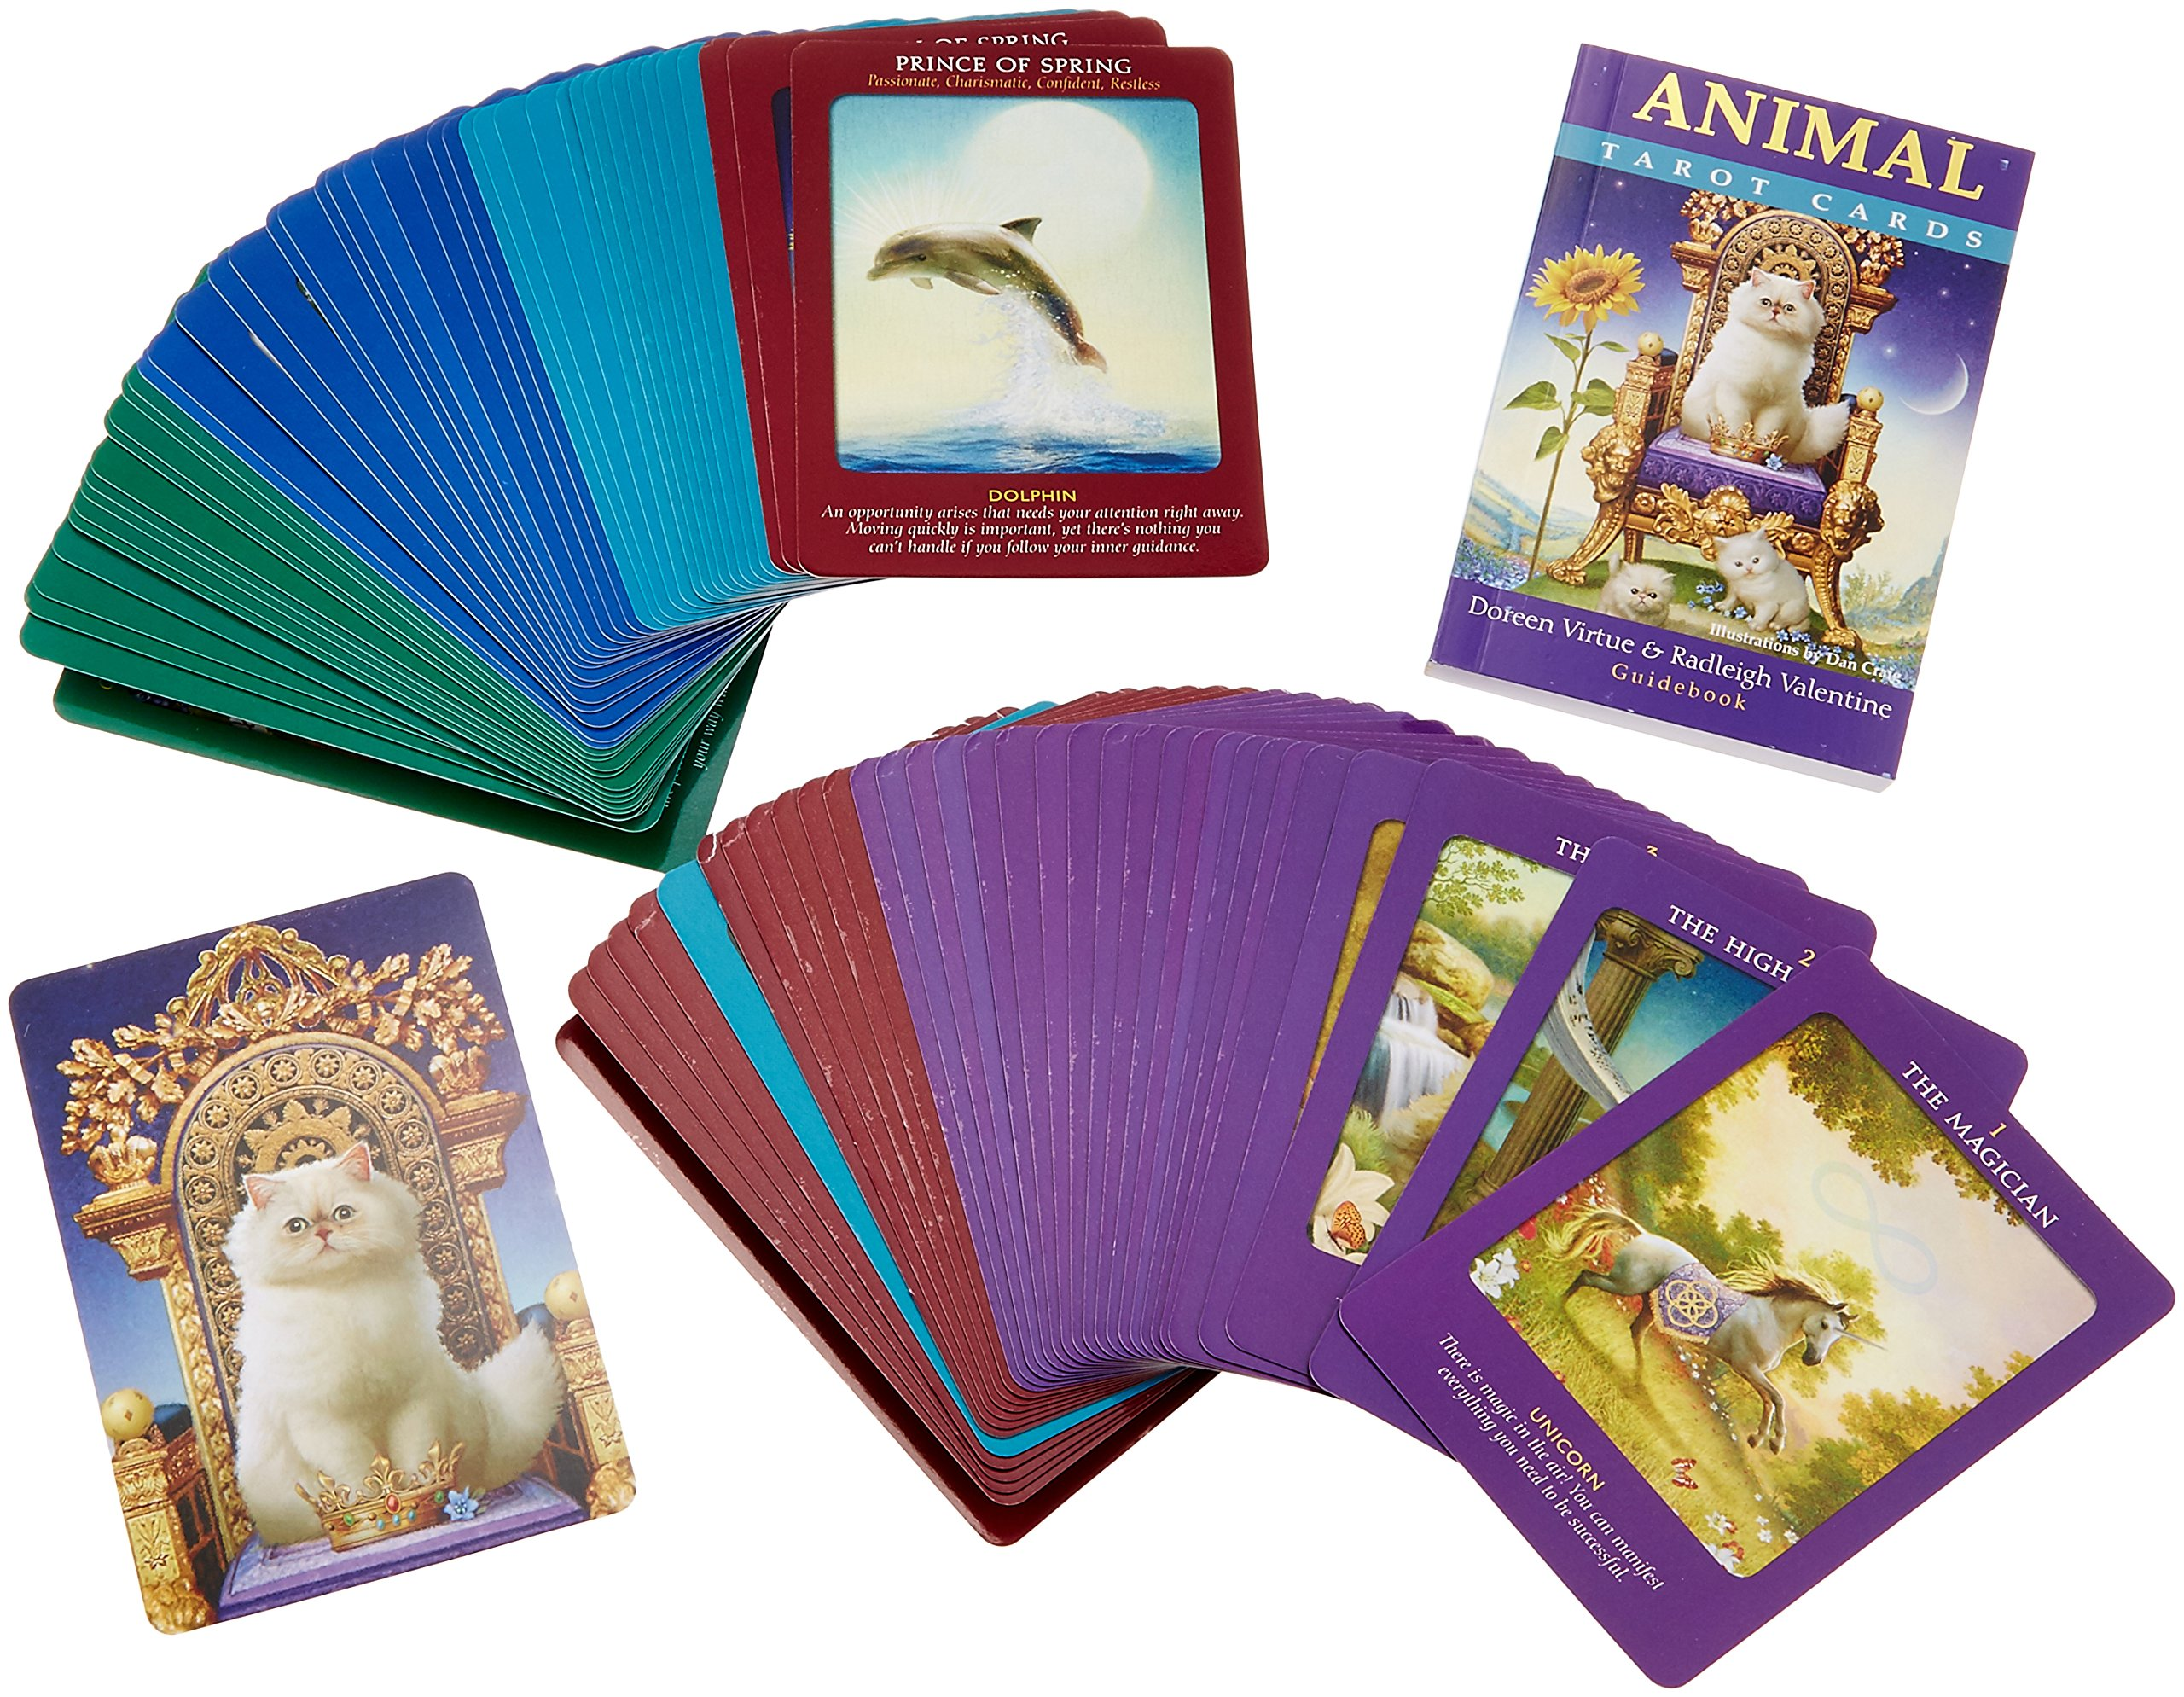 Animal Tarot Cards A 78 Card Deck And Guidebook Virtue Doreen Valentine Radleigh 9781401951214 Amazon Com Books